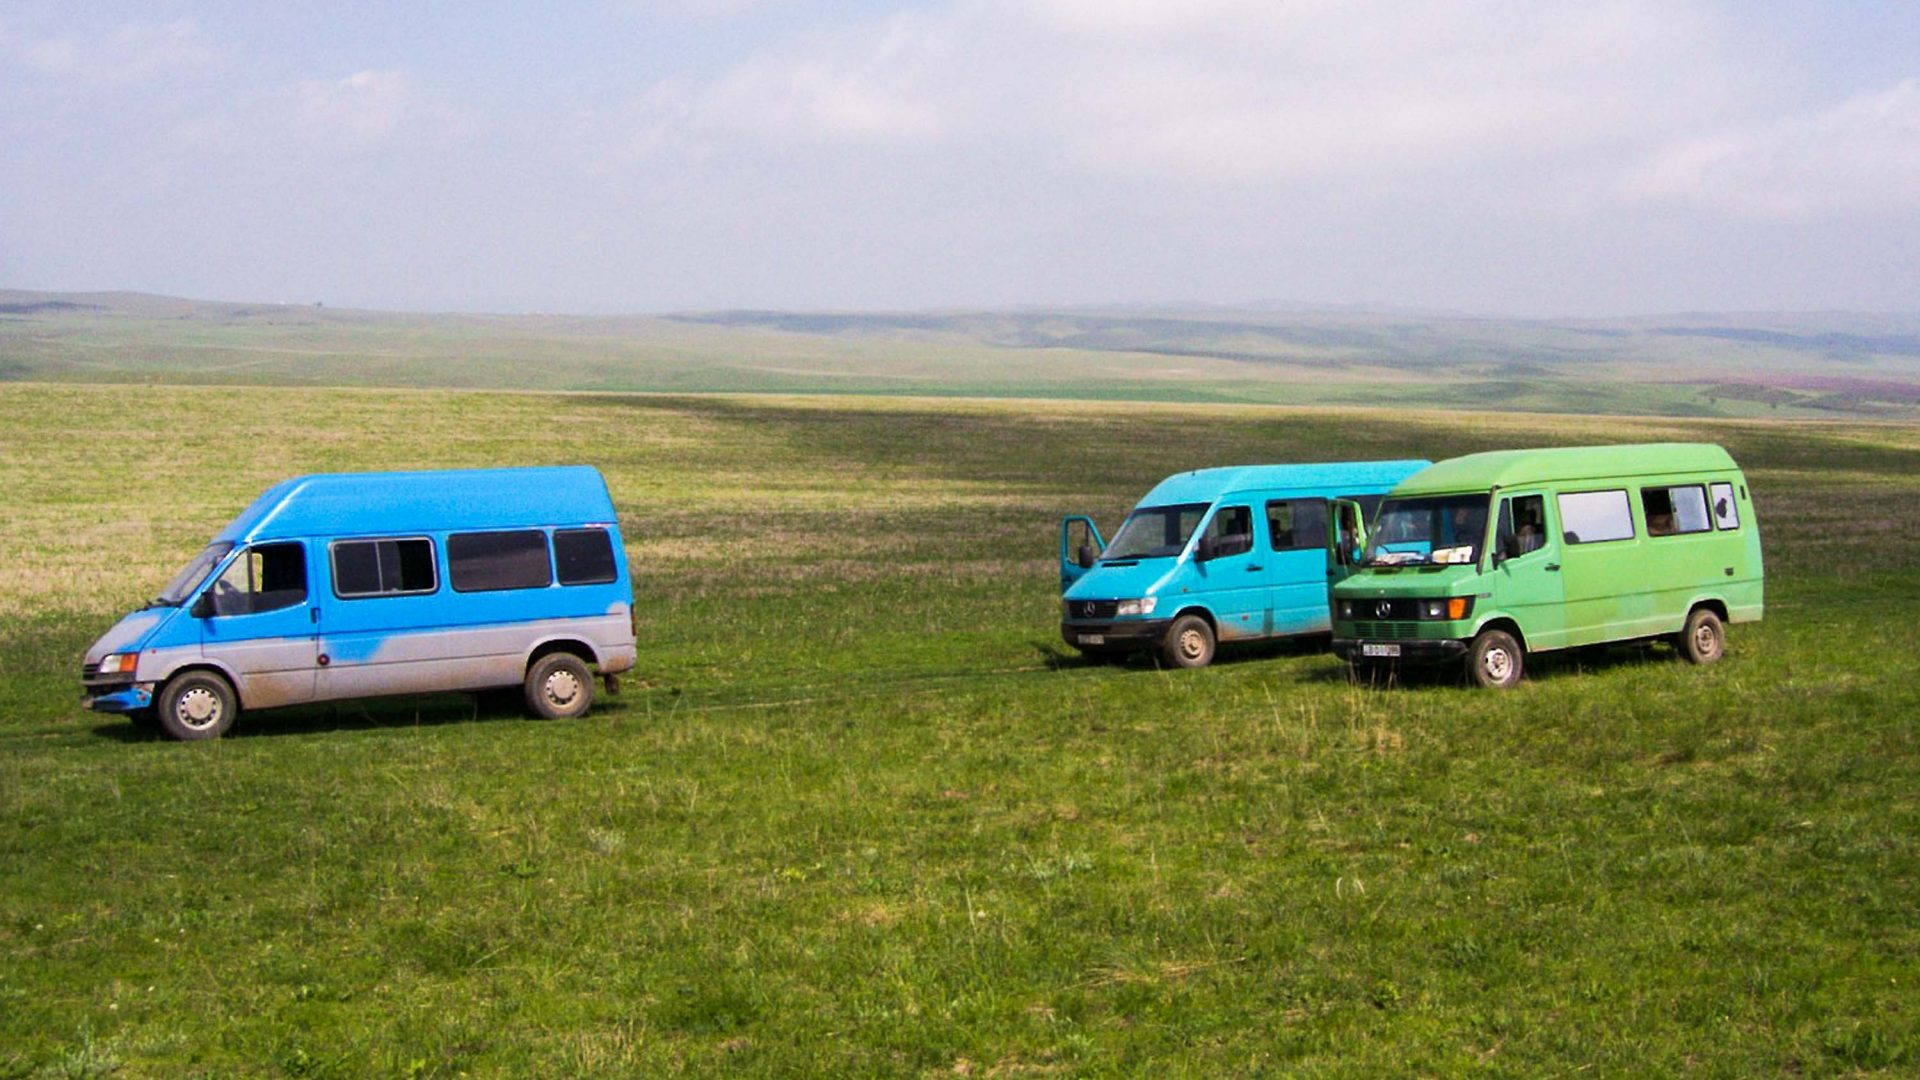 Want a crash course in Armenian culture? Hop on the ballistic bus